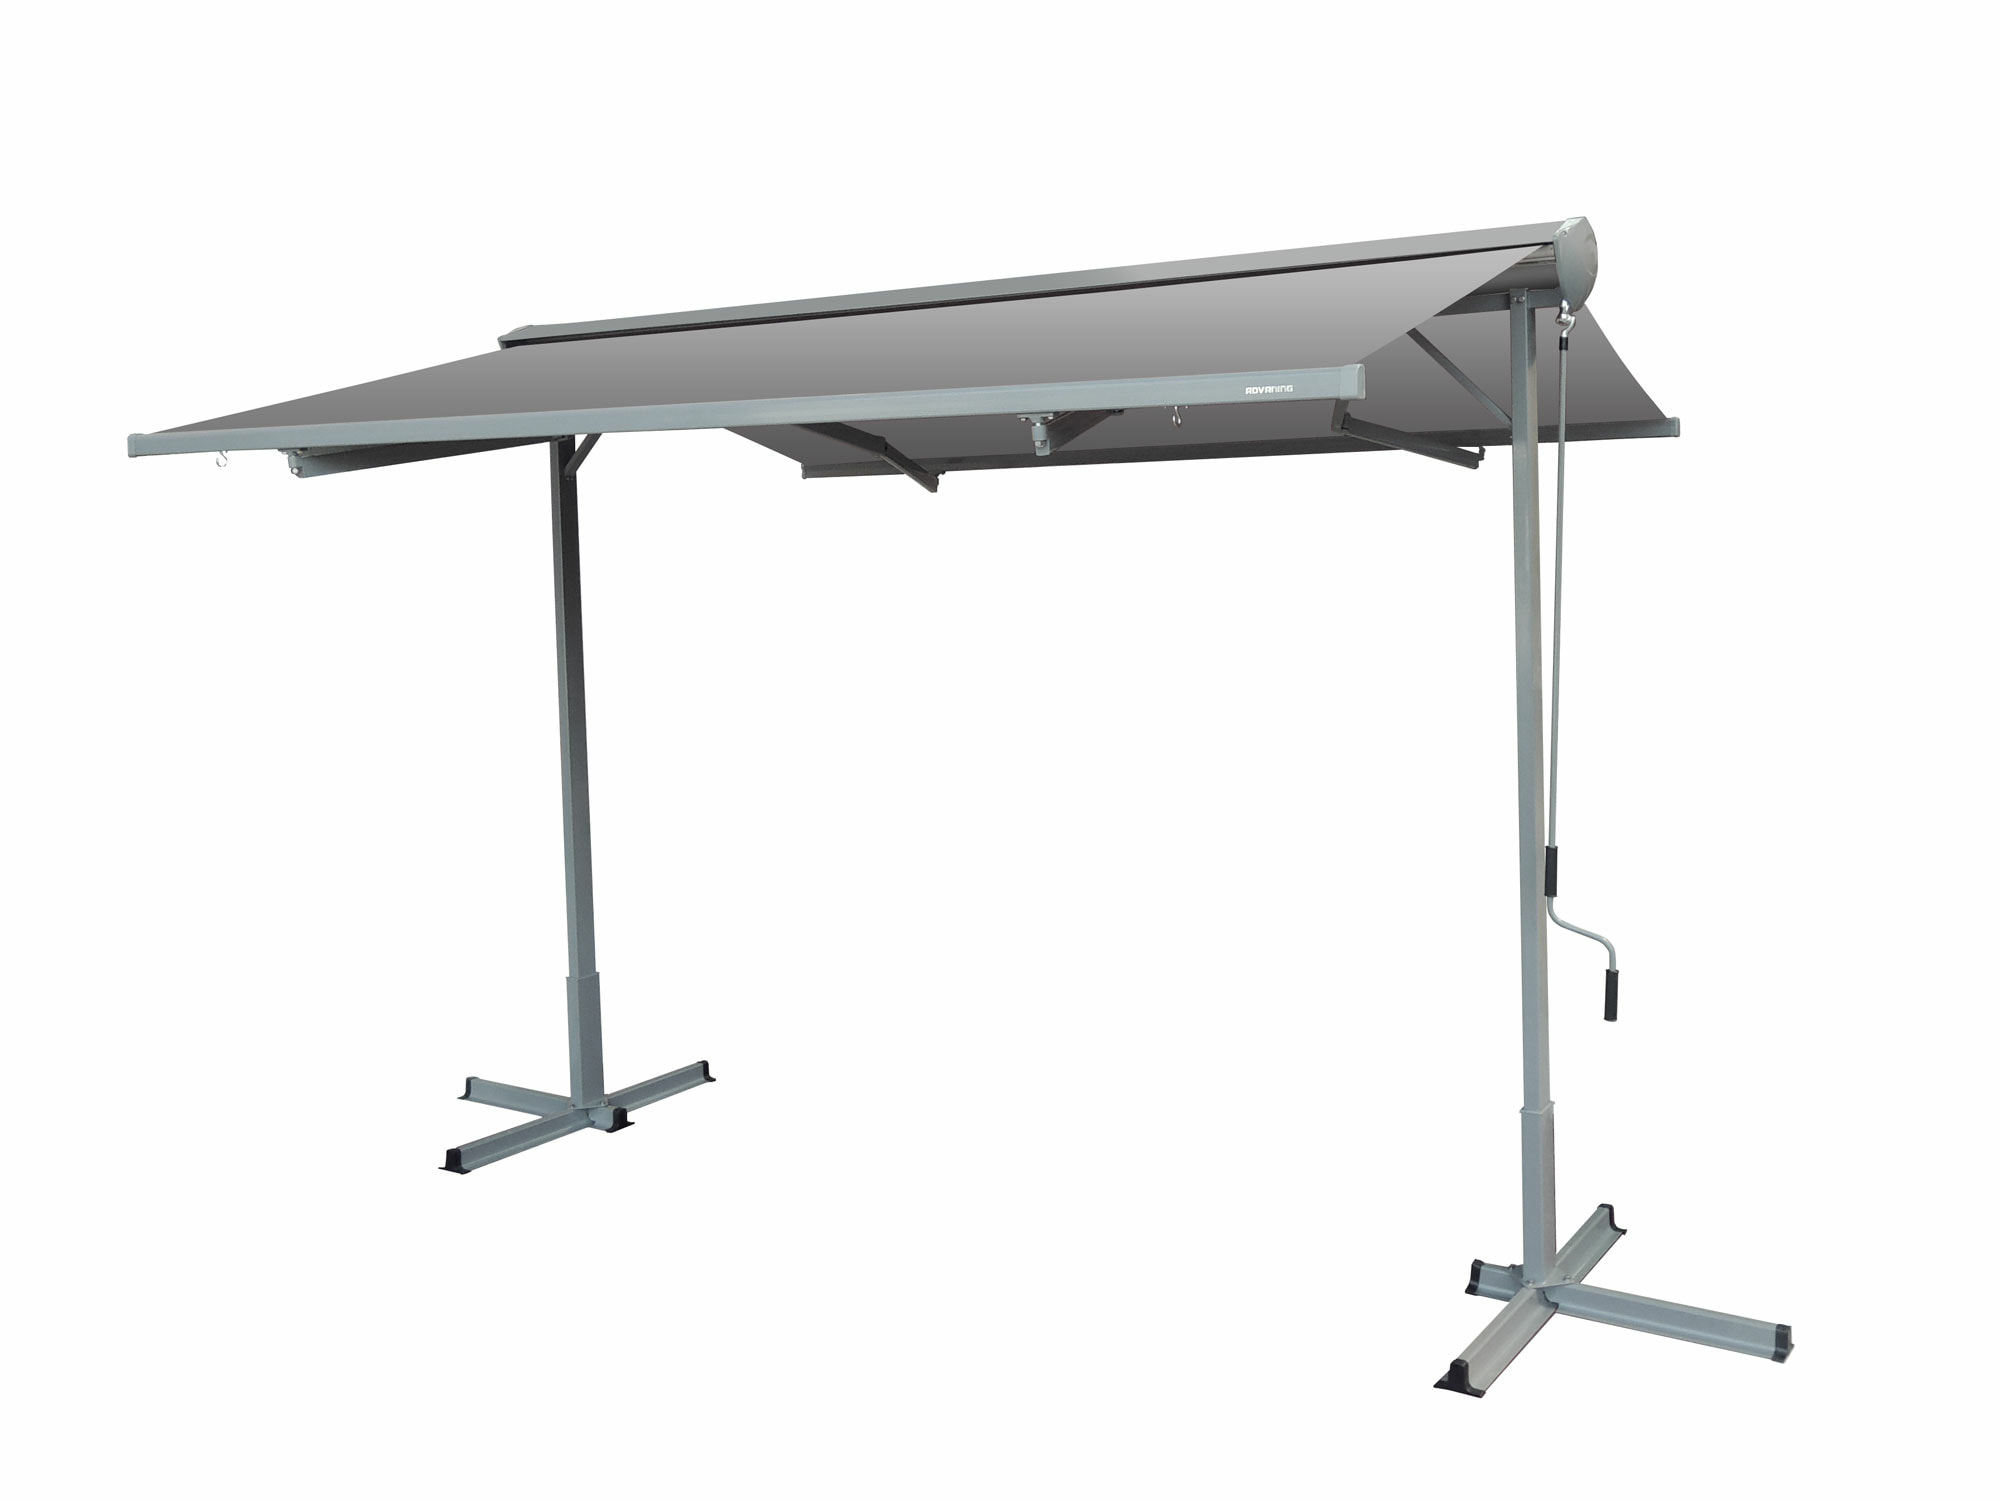 Fs Series Free Standing Awning